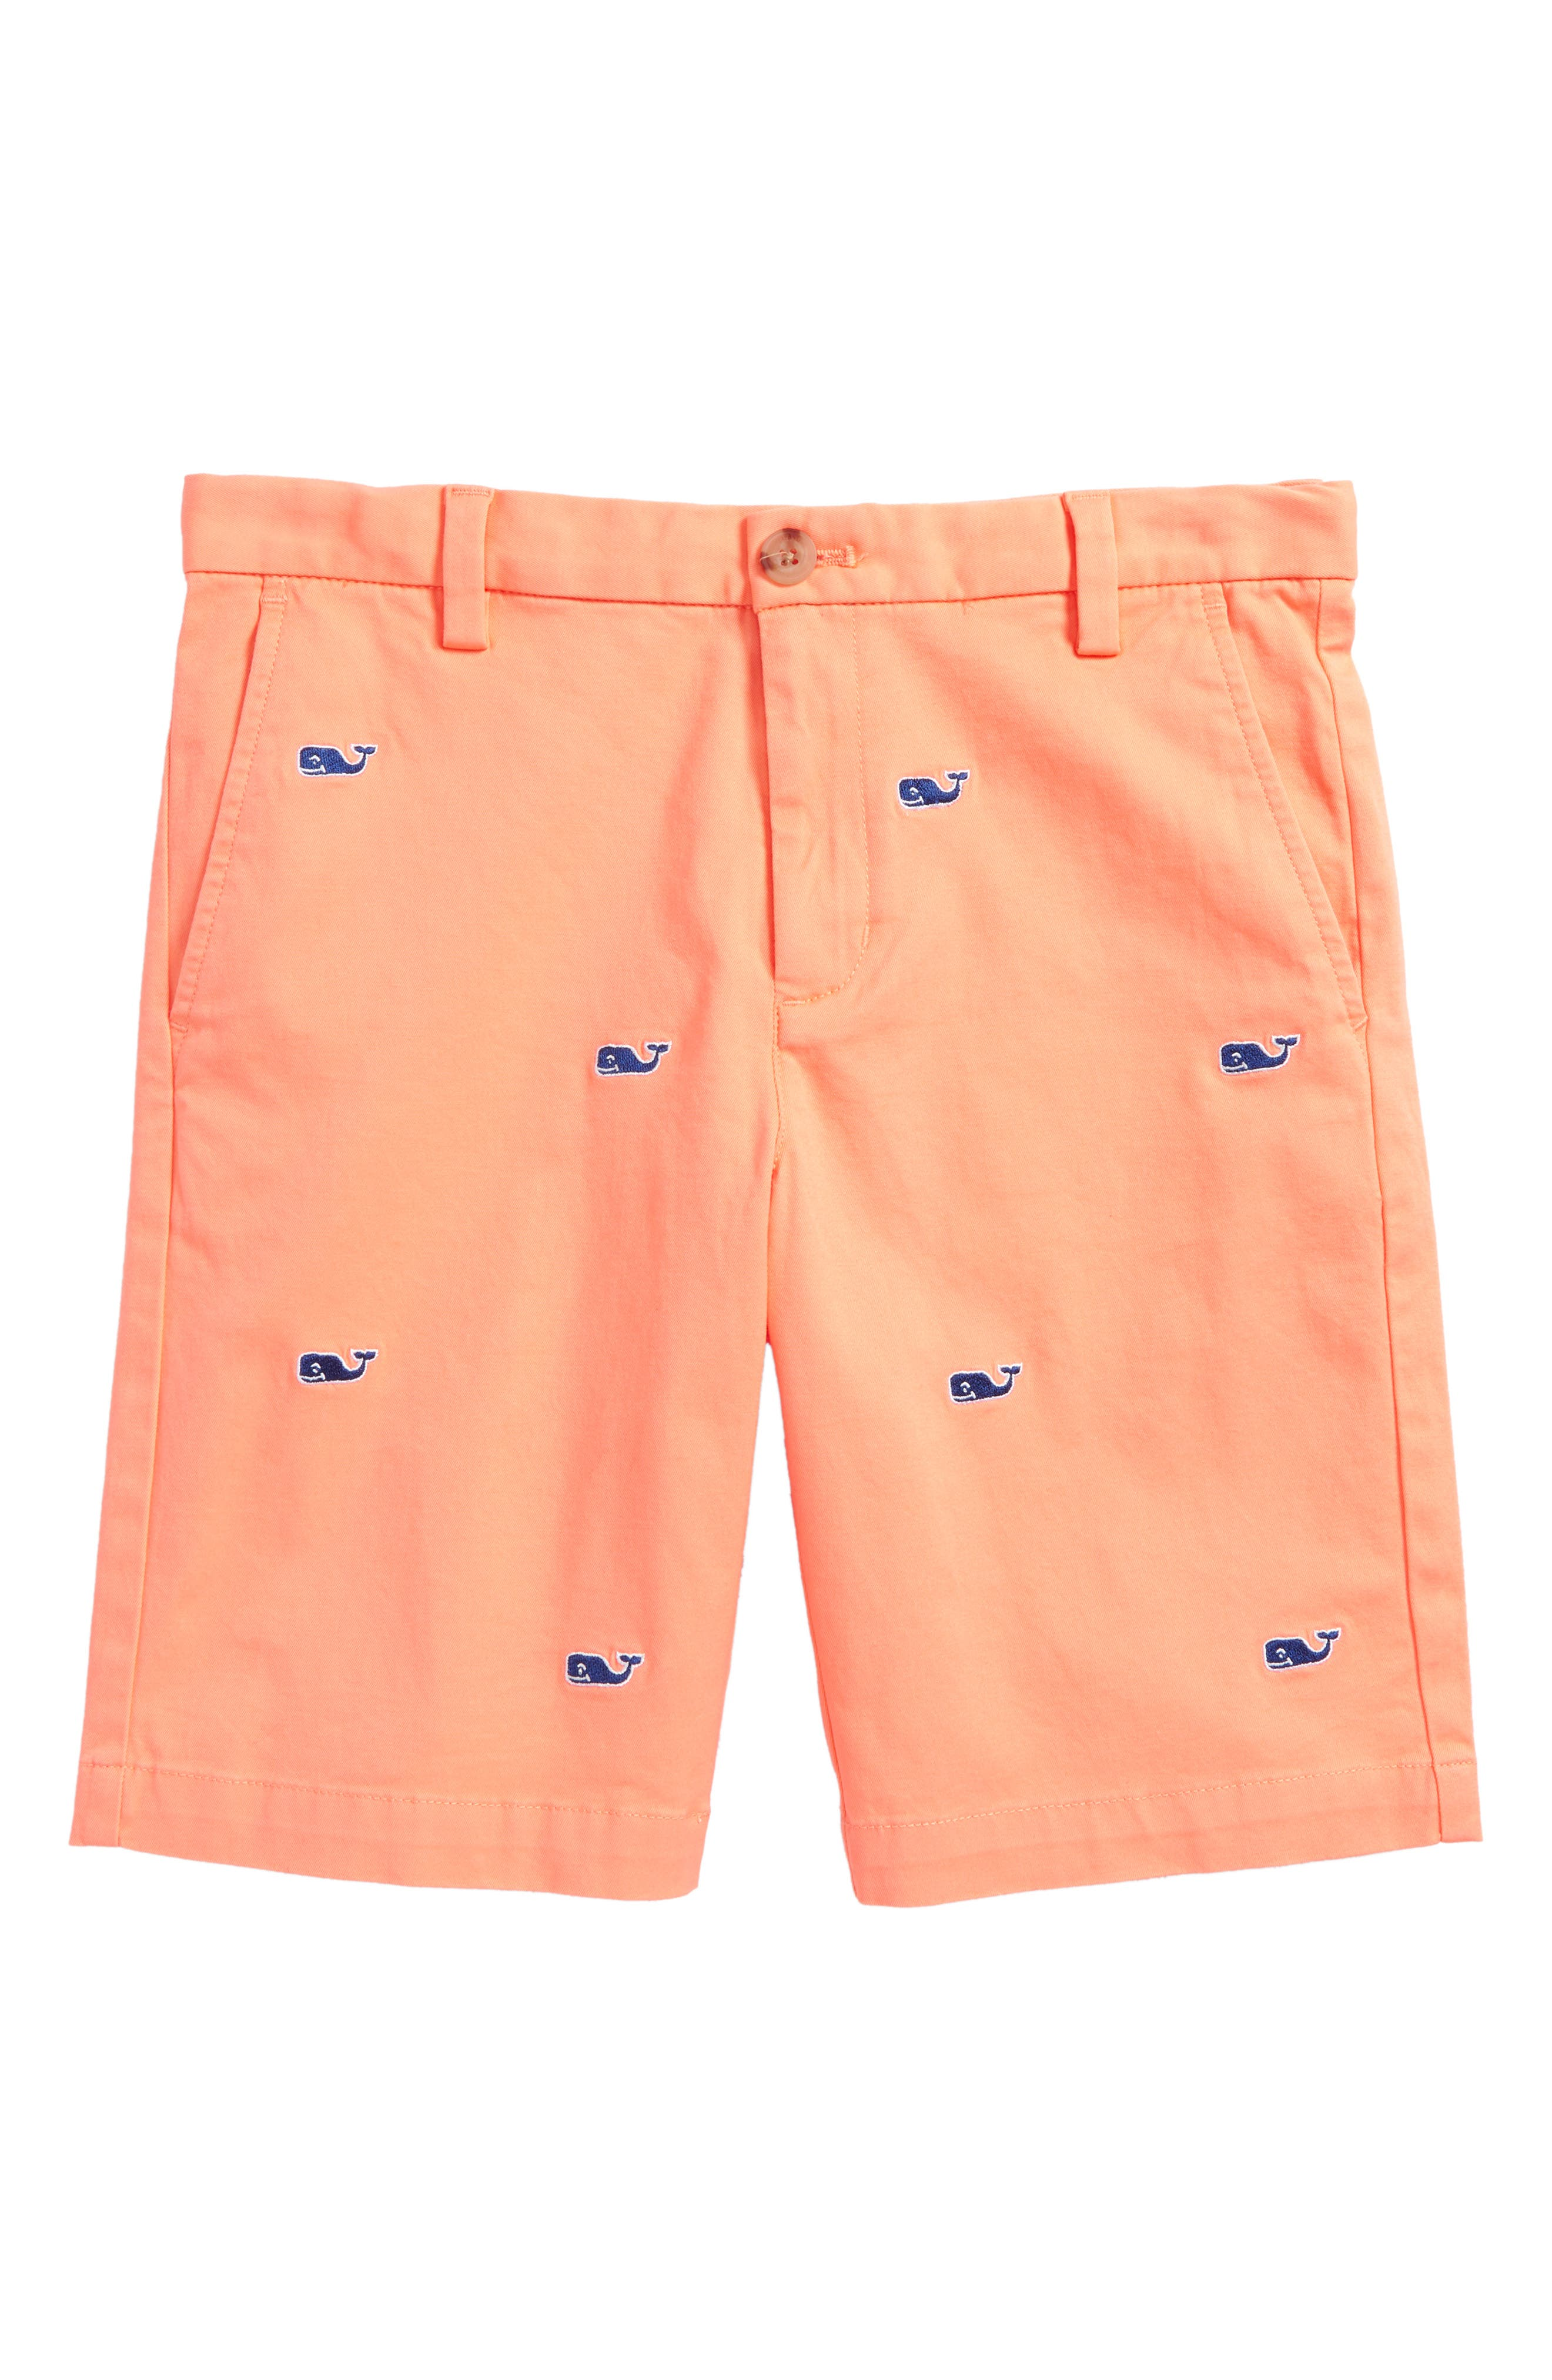 Stretch Breaker Whale Embroidered Shorts,                         Main,                         color, 885